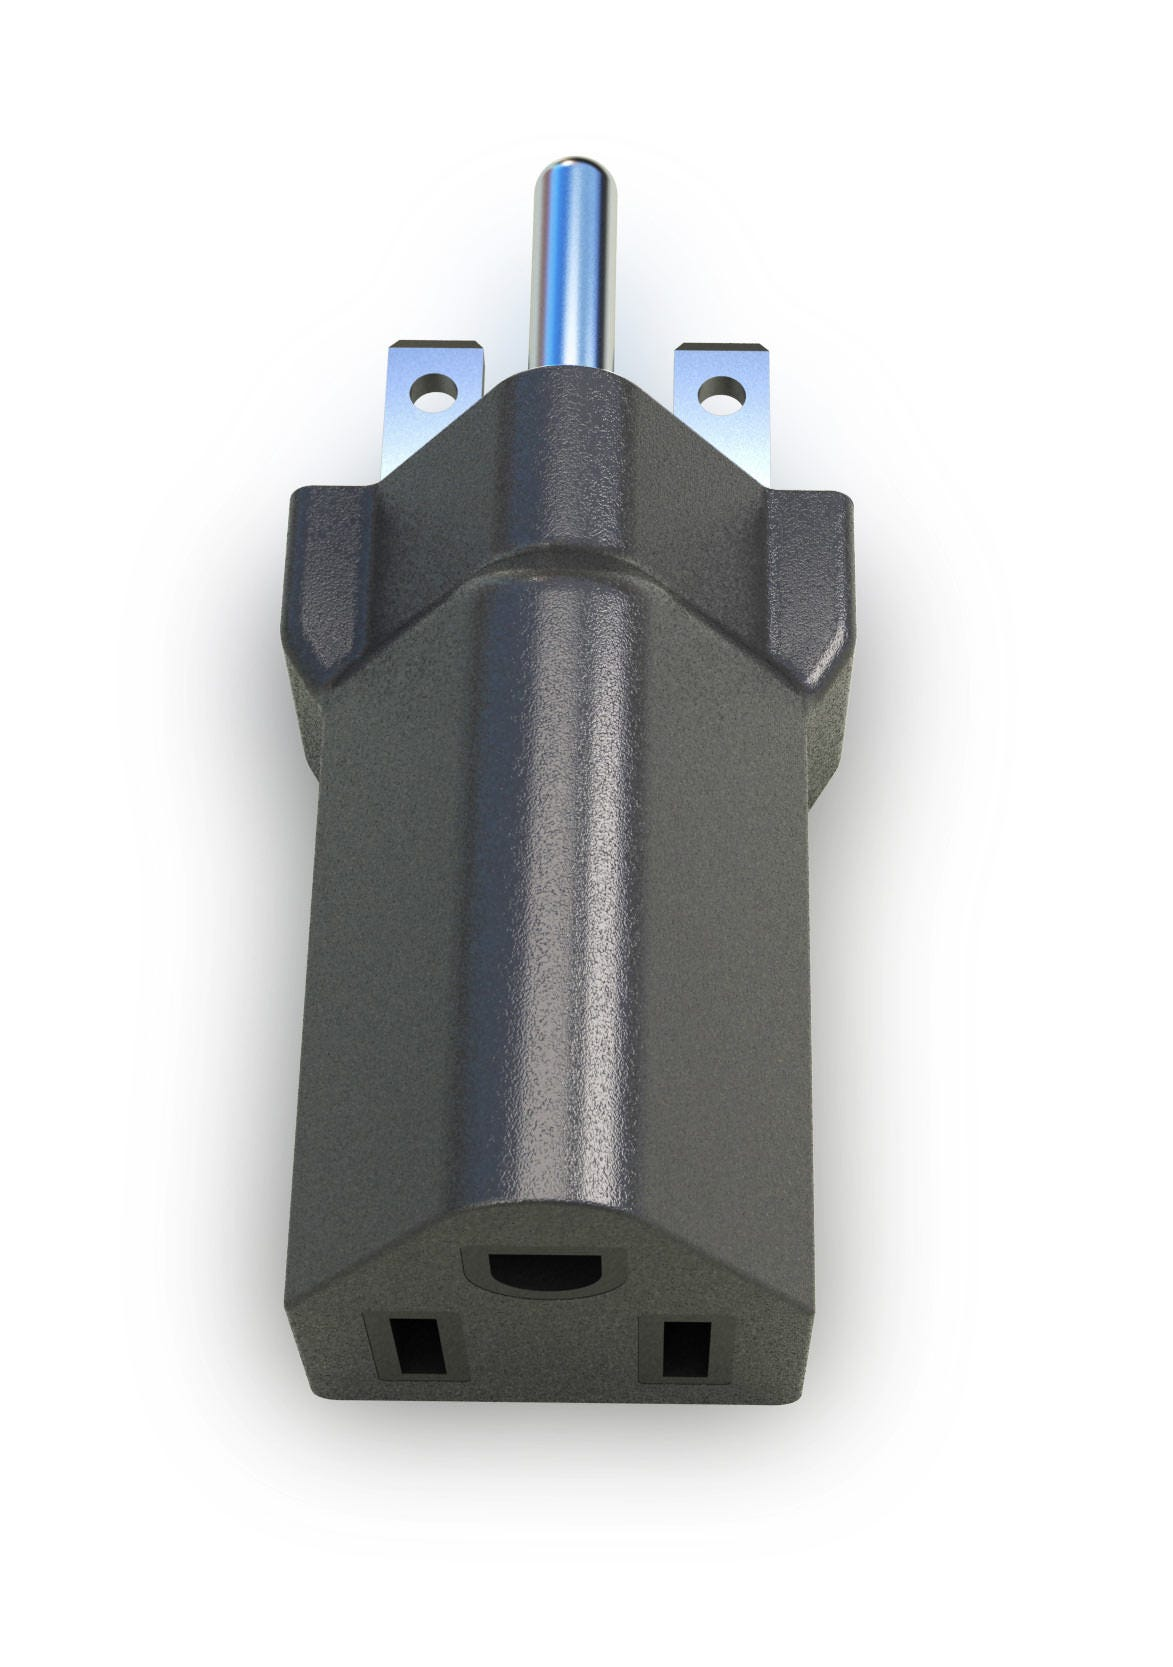 Photograph of Plug Converter 110/120v to 220/240v Adapter